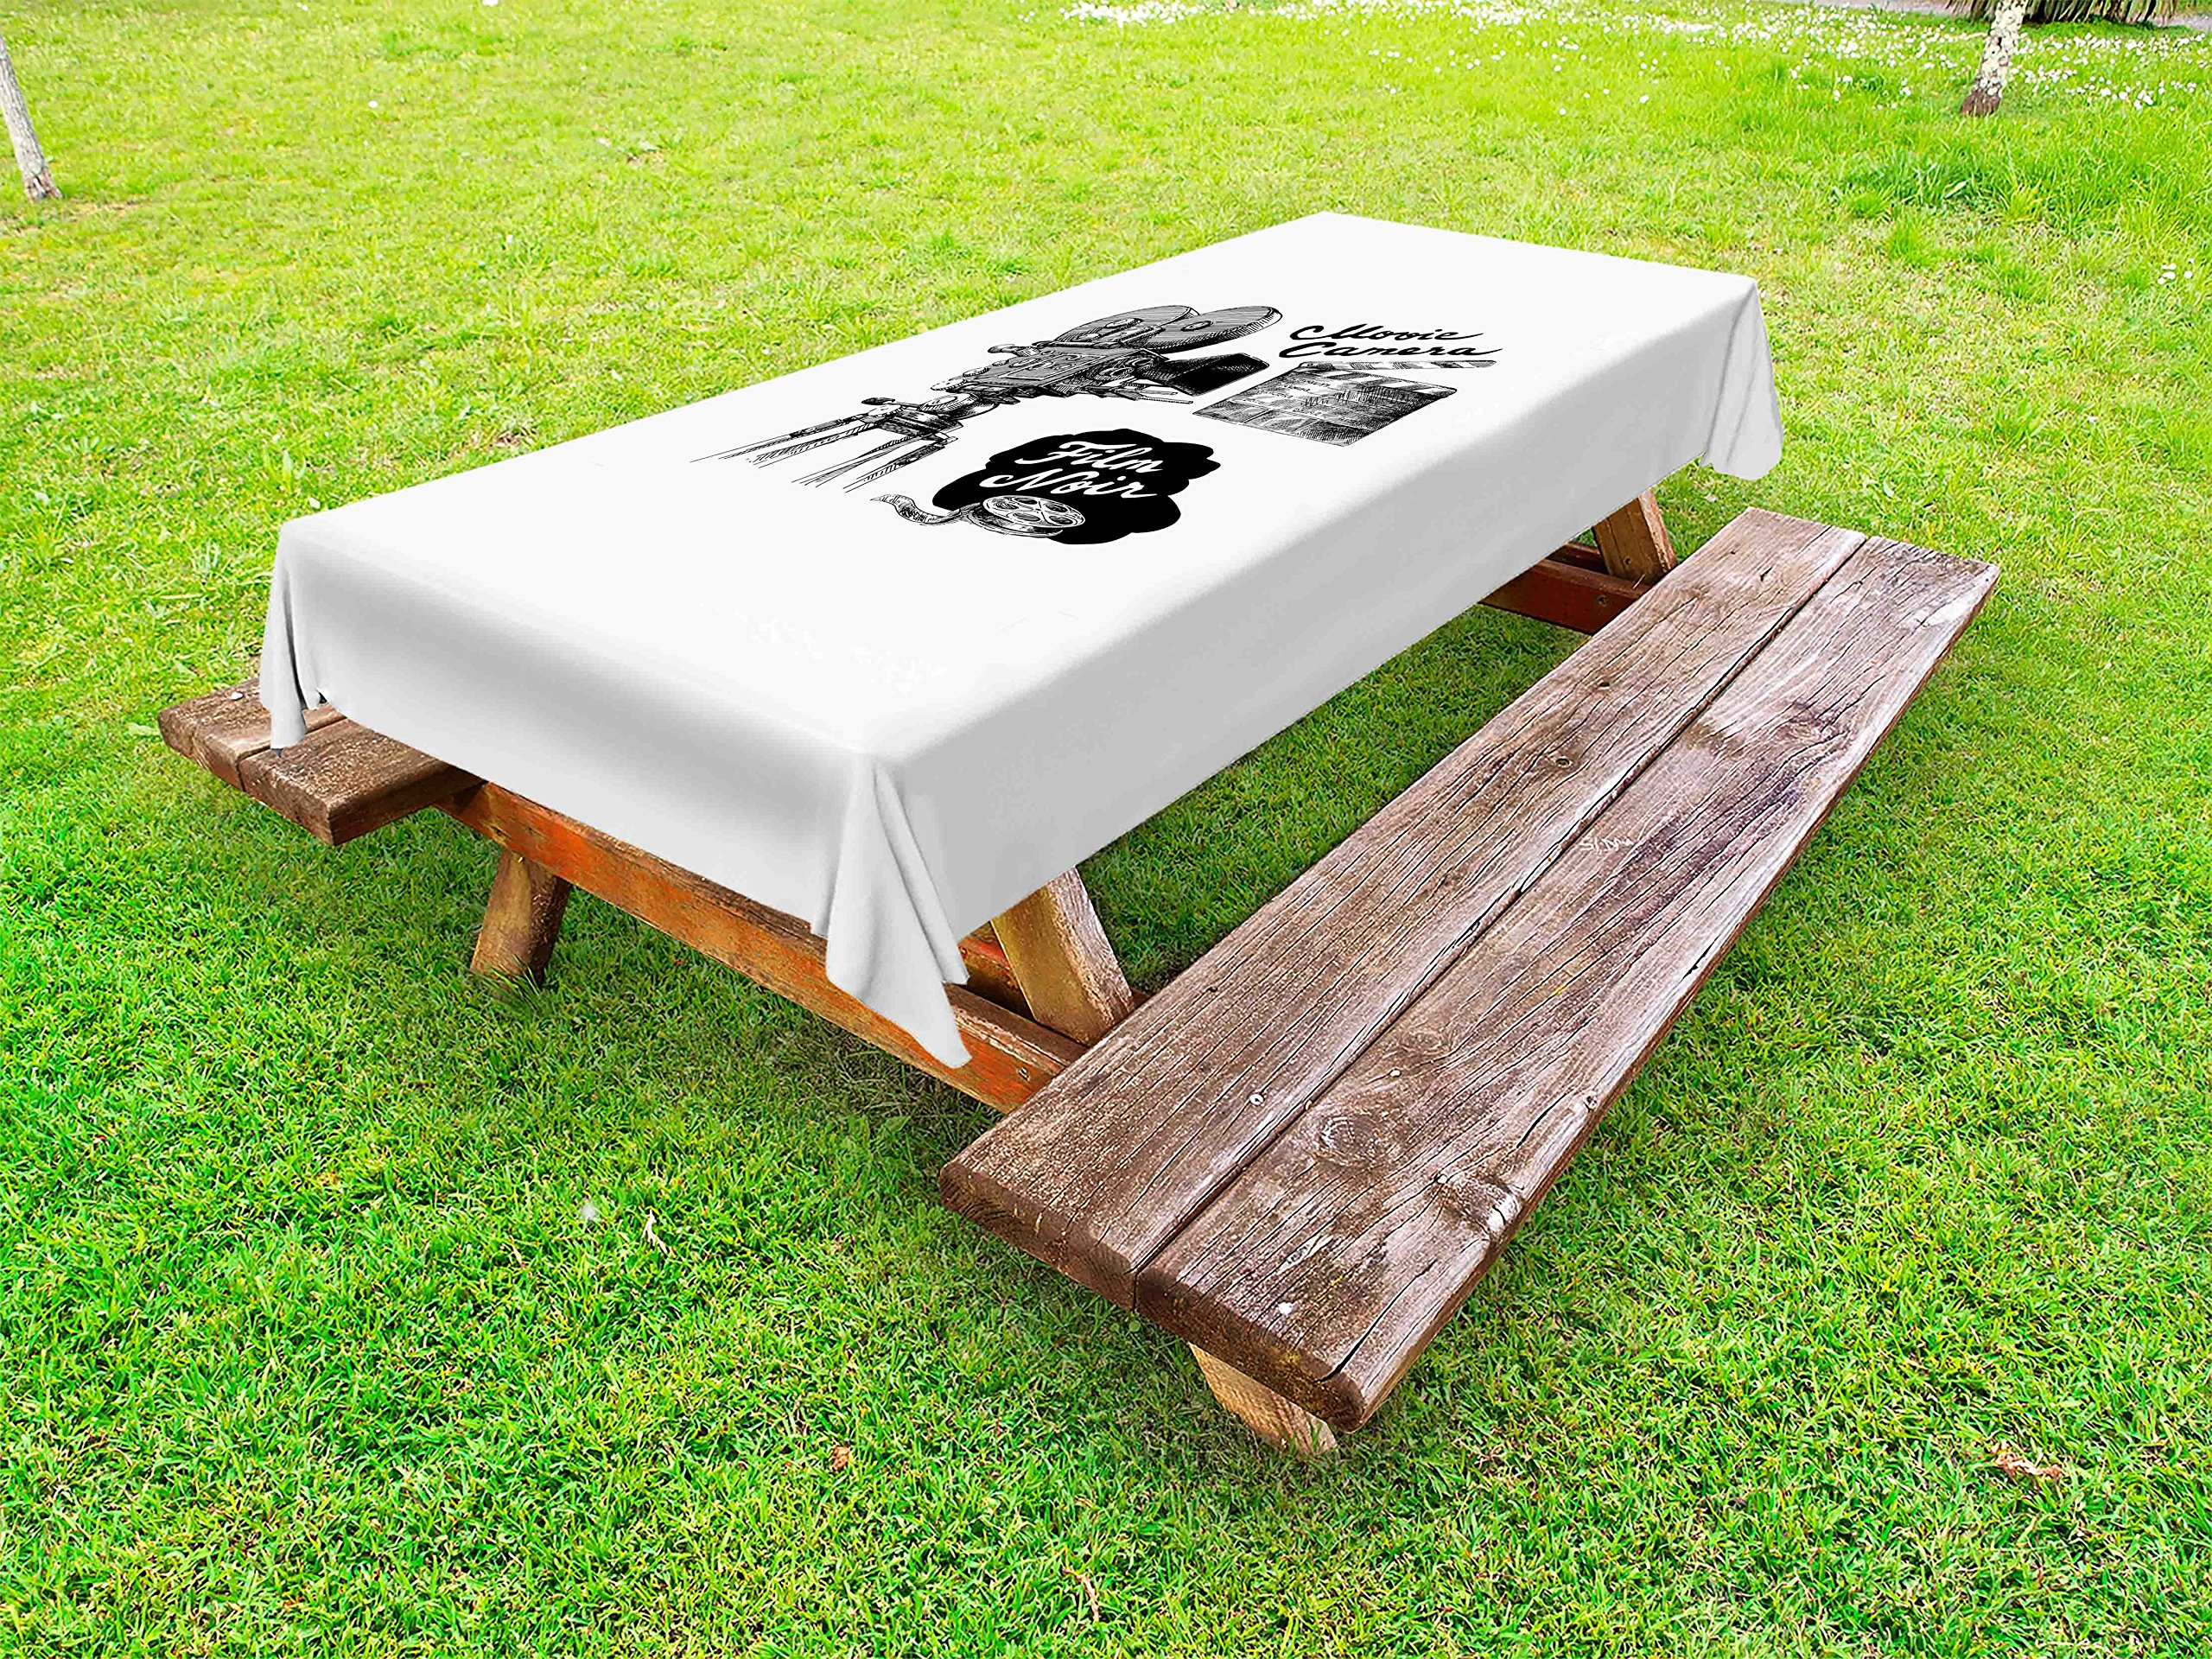 Ambesonne Movie Theater Outdoor Tablecloth, Antique Movie Camera Hand Drawn Style Art Collection Film Noir Genre Theme, Decorative Washable Picnic Table Cloth, 58 X 104 Inches, Black White